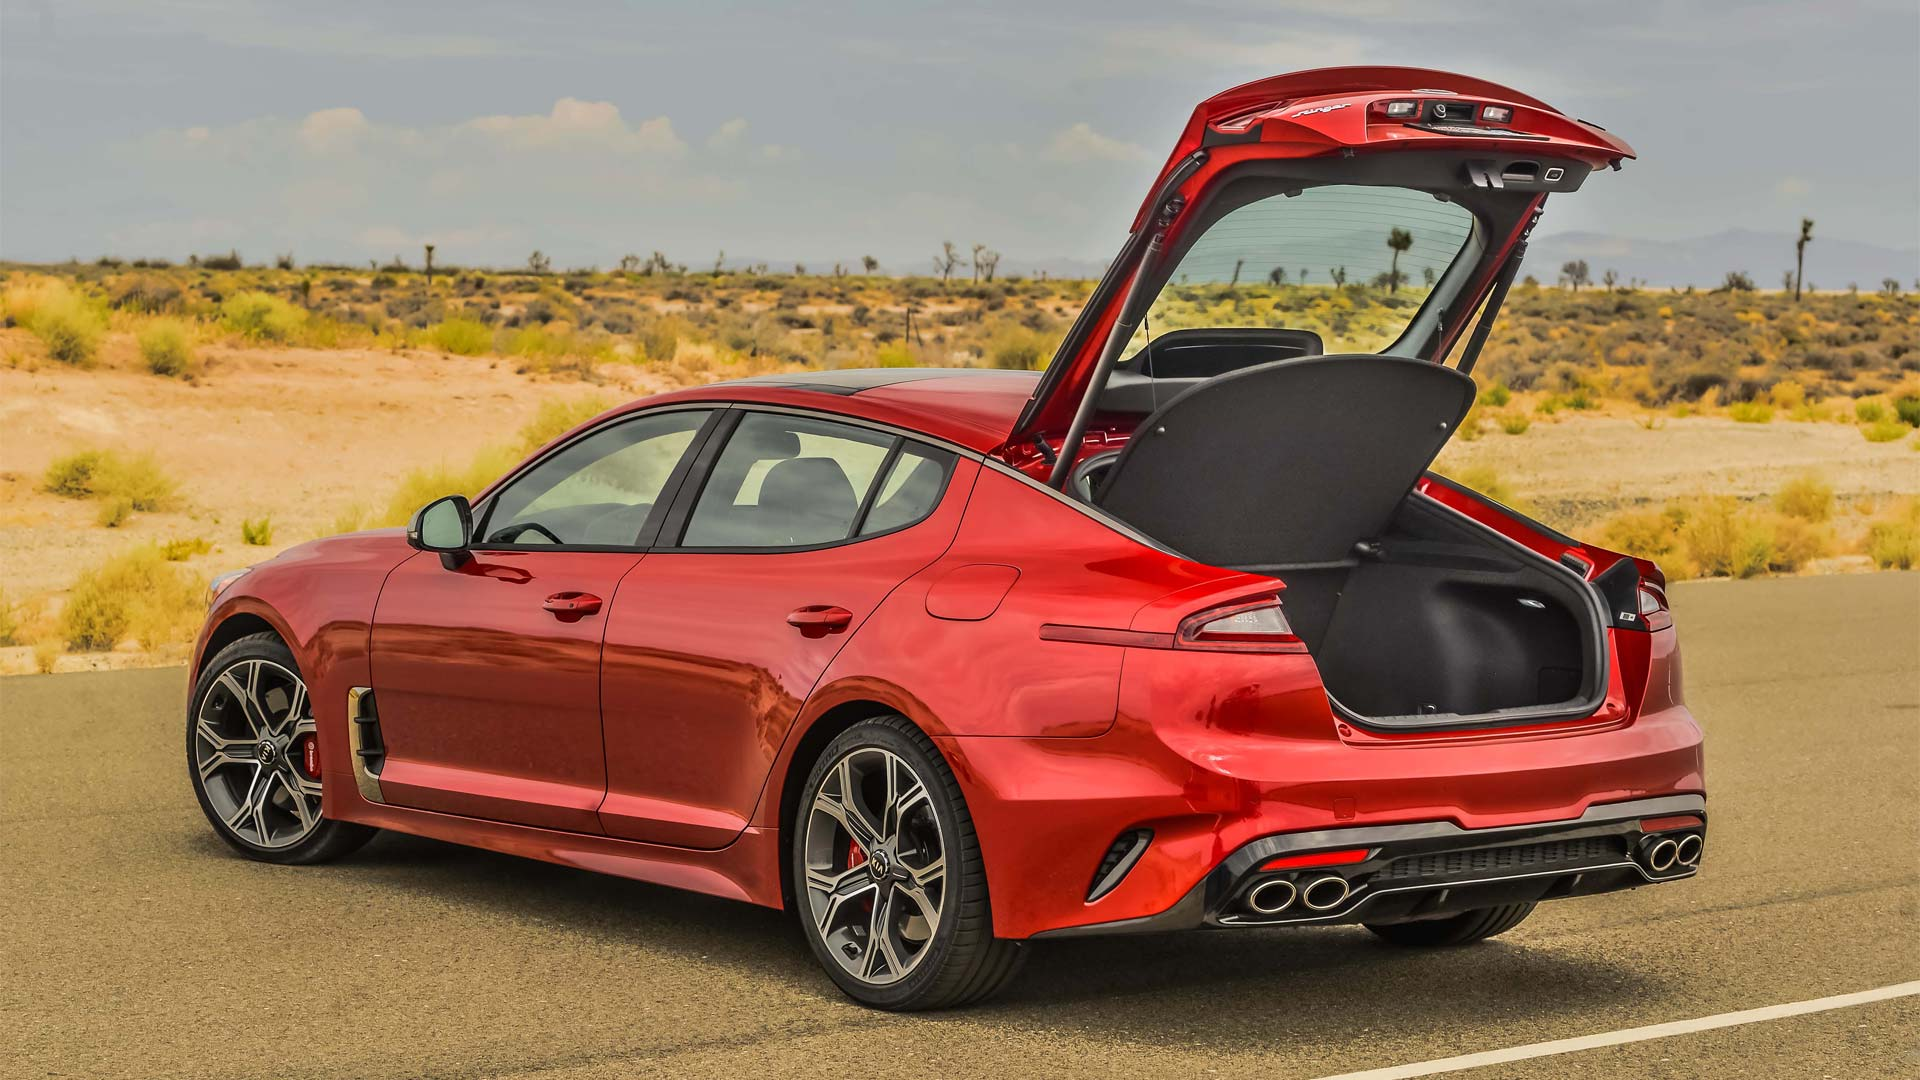 2018 kia stinger gt takes the brand to a whole new level autodevot. Black Bedroom Furniture Sets. Home Design Ideas